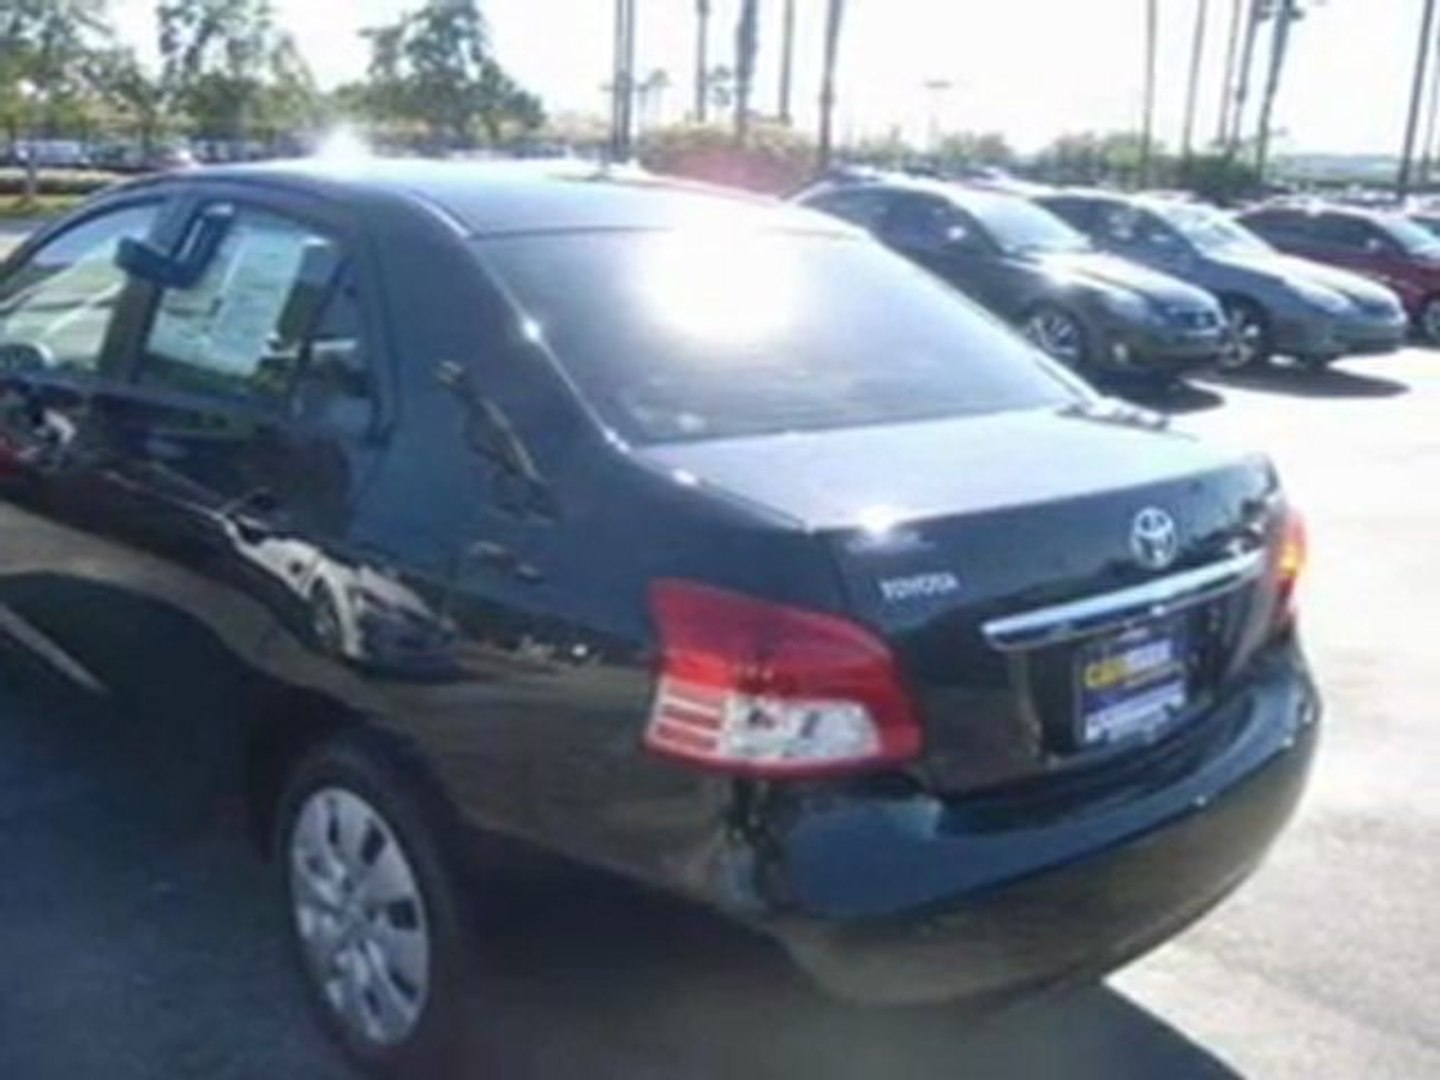 2010 toyota yaris for sale in pompano beach fl used toyota by everycarlisted com video dailymotion dailymotion